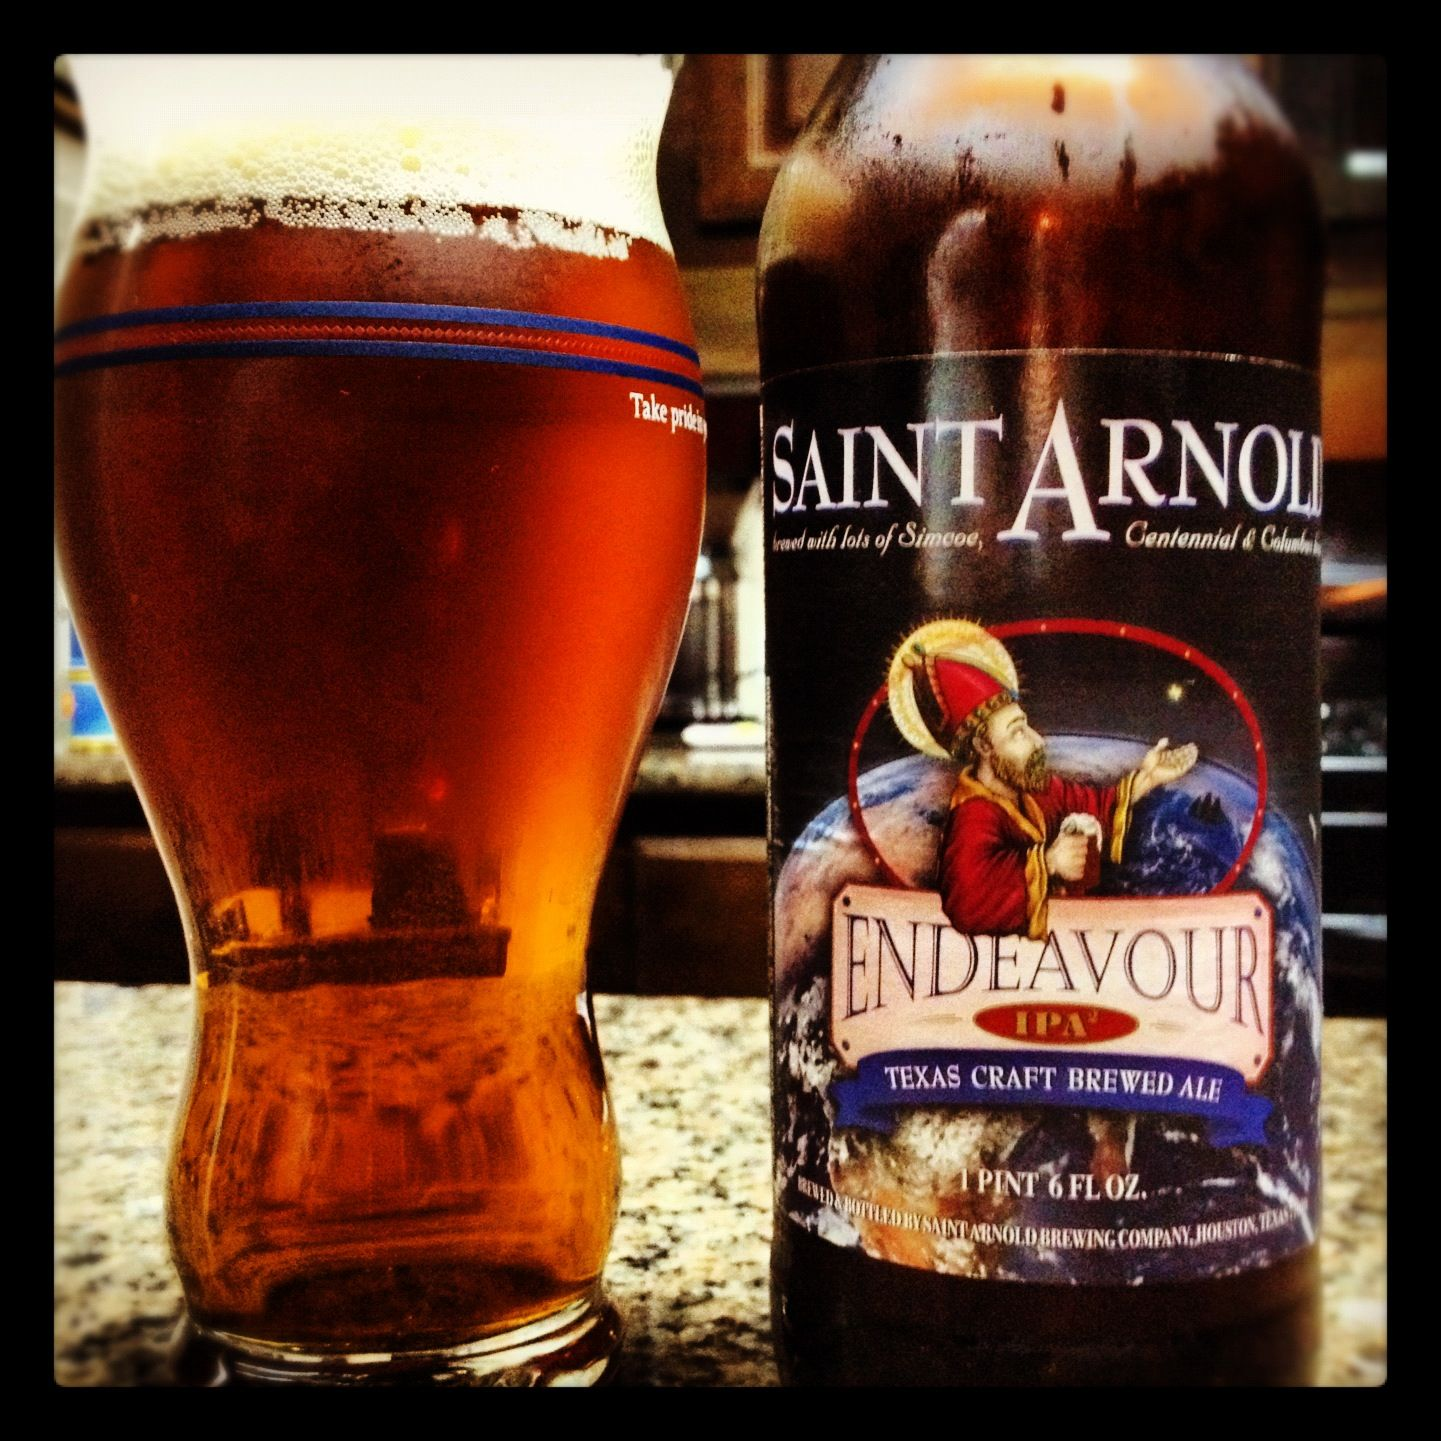 St Arnold Endeavor Double Ipa Super Fruity With Lots Of Grapefruit Notes Craft Brewing Cheap Beer Double Ipa